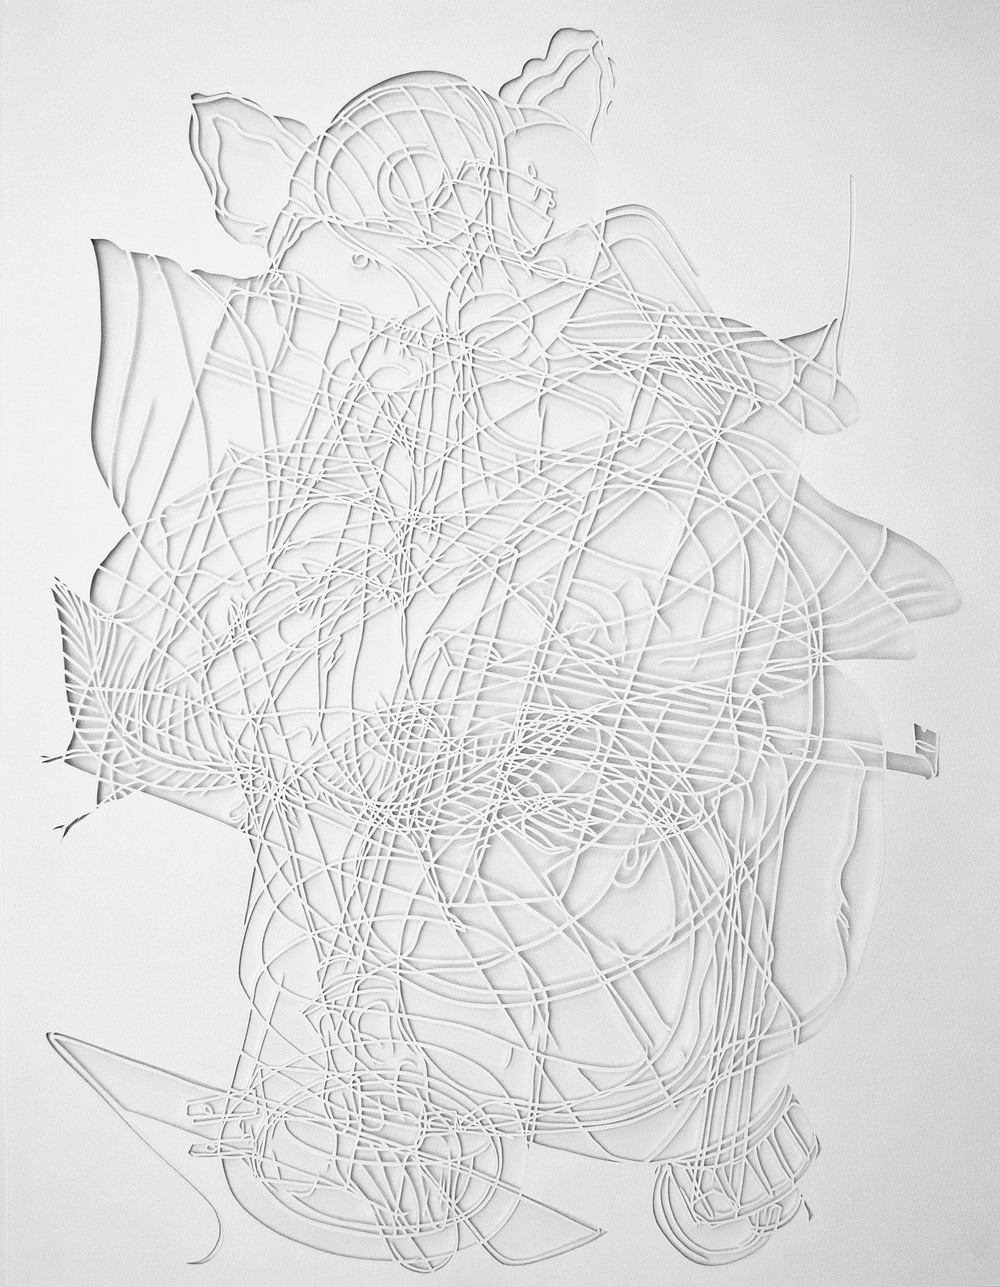 STA-2013-0001 Untitled (Cutout)_2013_30 x 22 inches.jpg